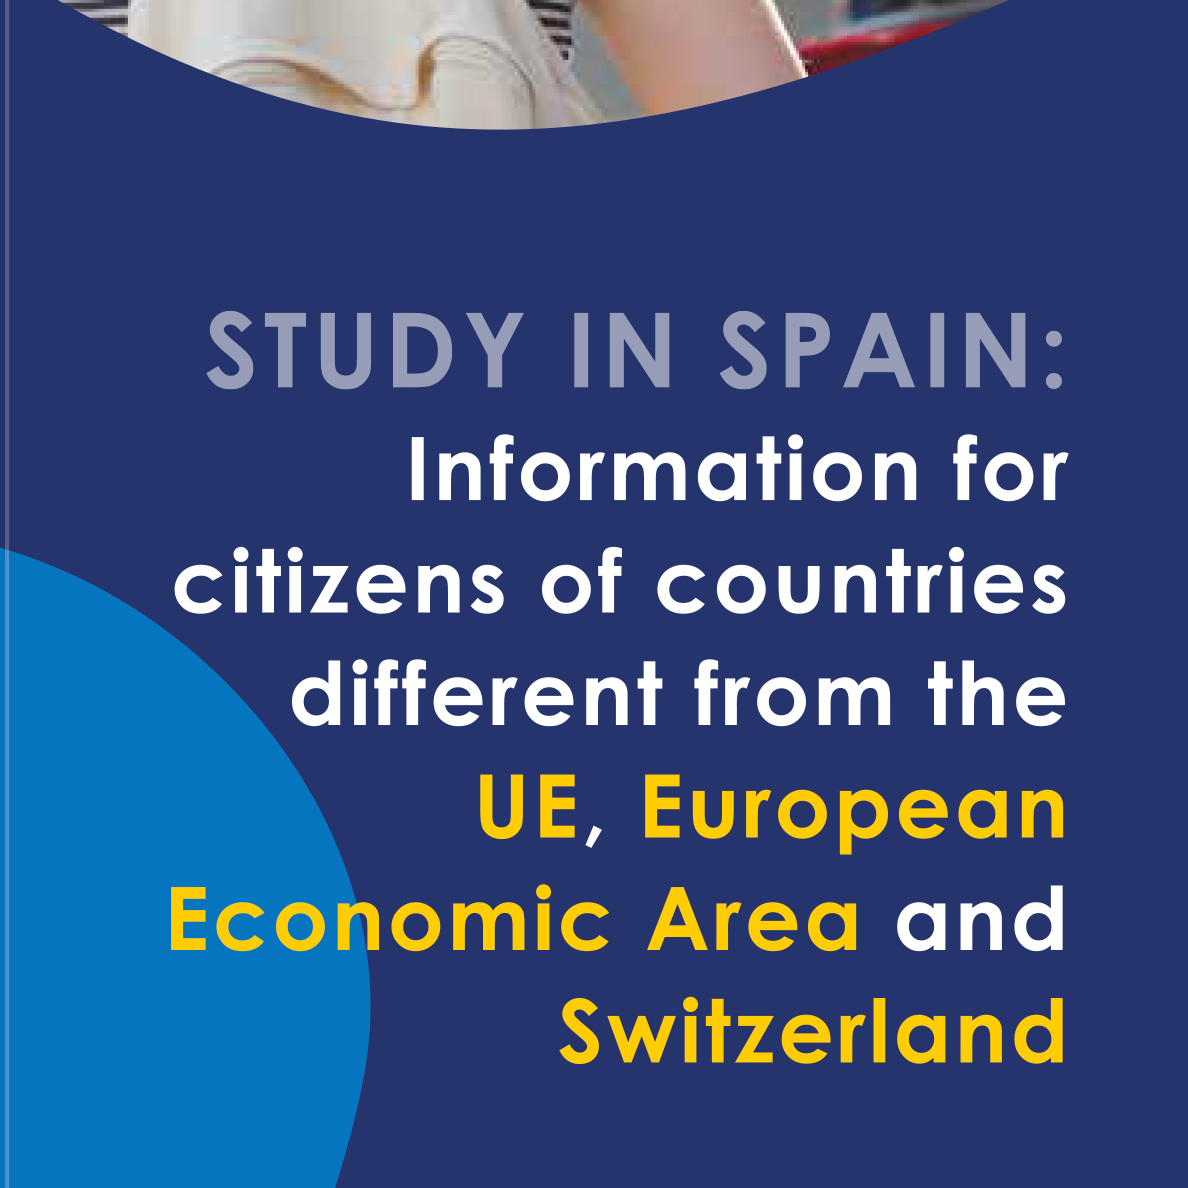 Study in Spain: Information for citizens of countries different from the UE, European Economic Area and Switzerland